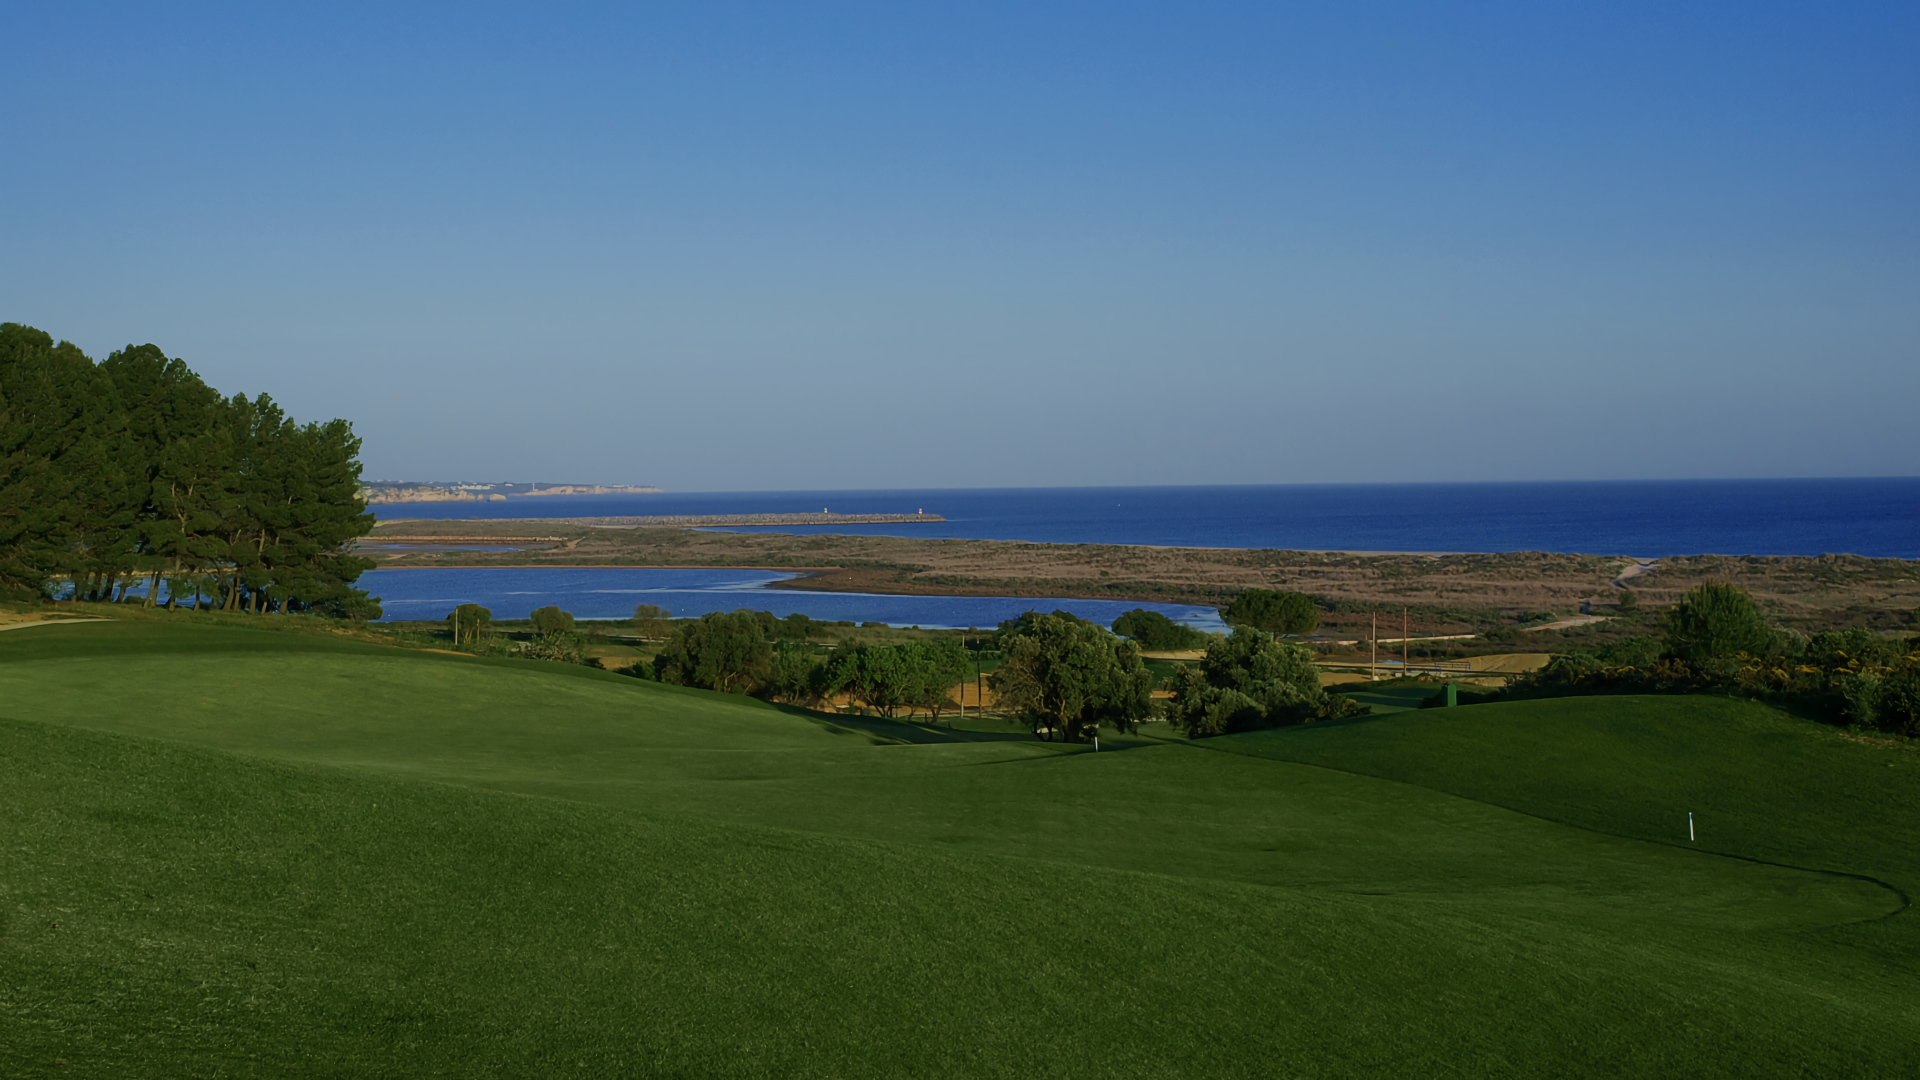 Golf course in Palmares